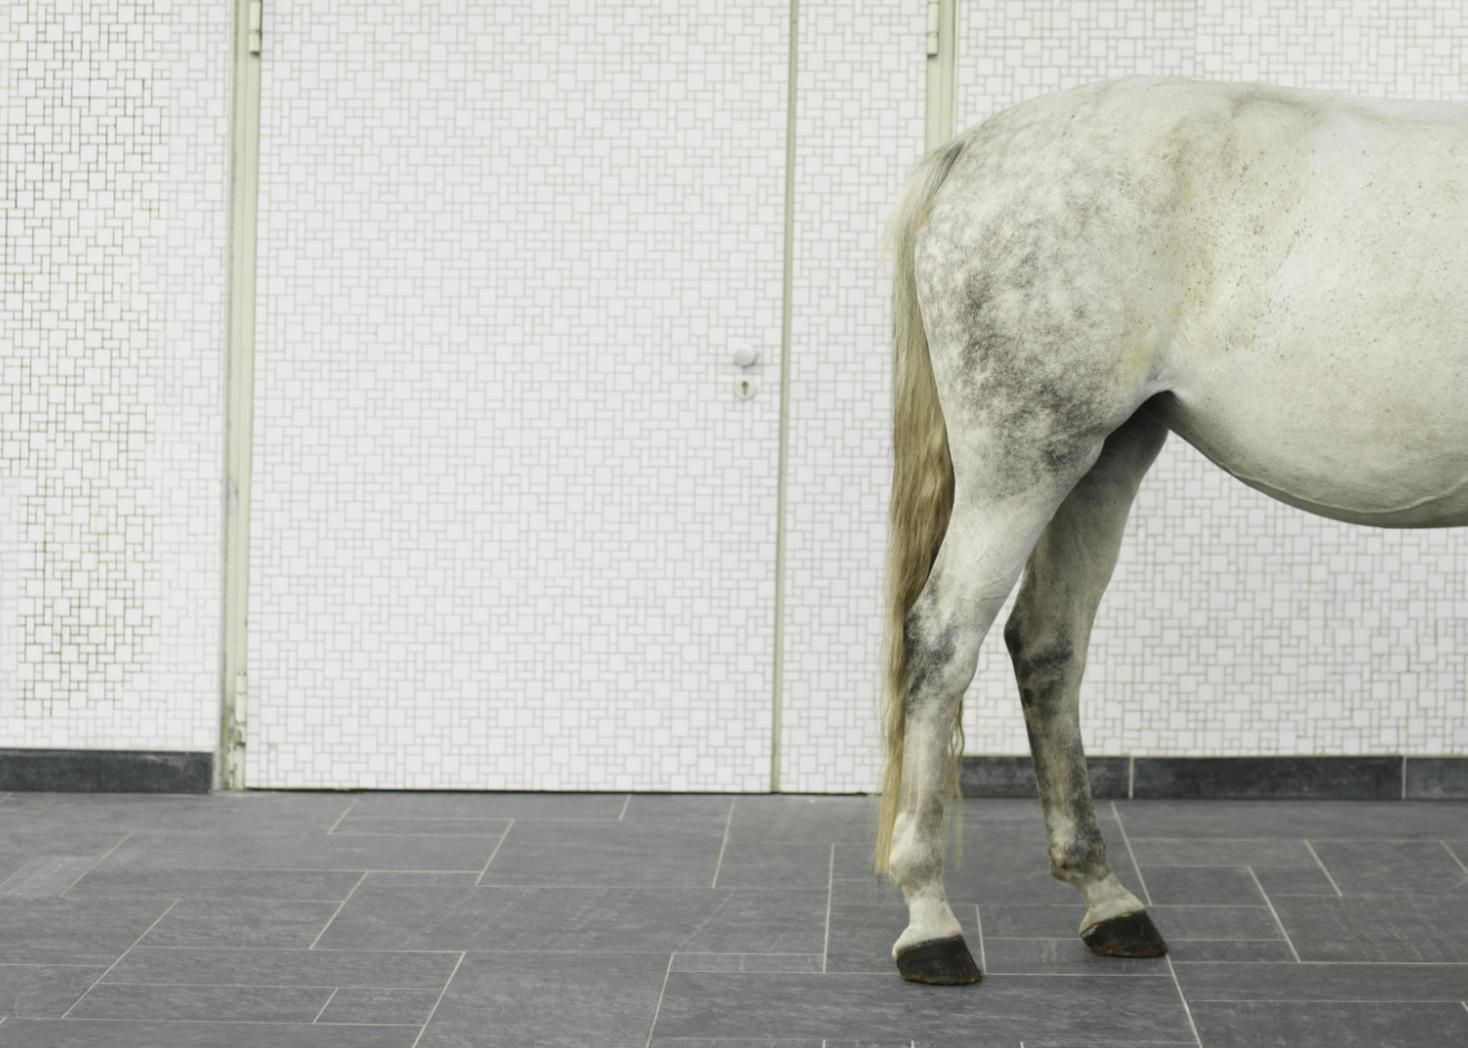 Hind Leg Problems In Horses Causes And Treatment